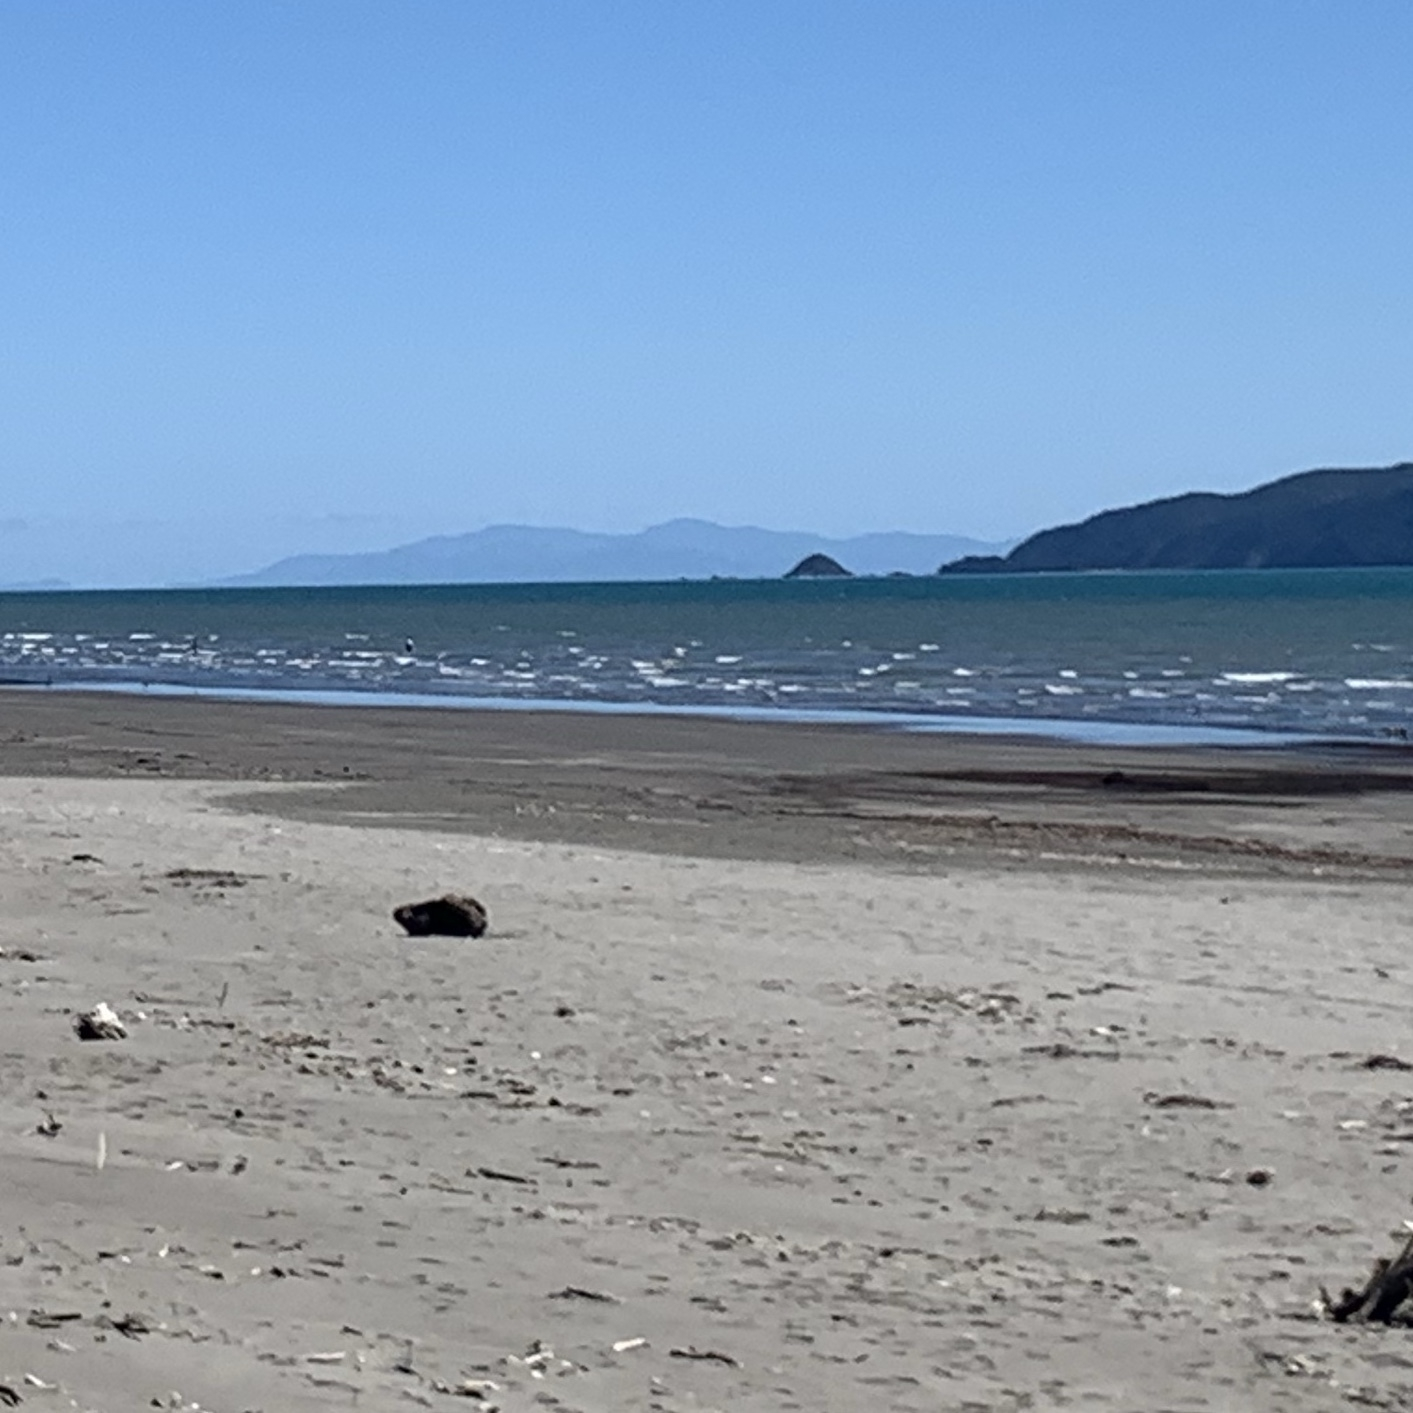 The South Island in the far diatance as taken from the beach at Waikanae